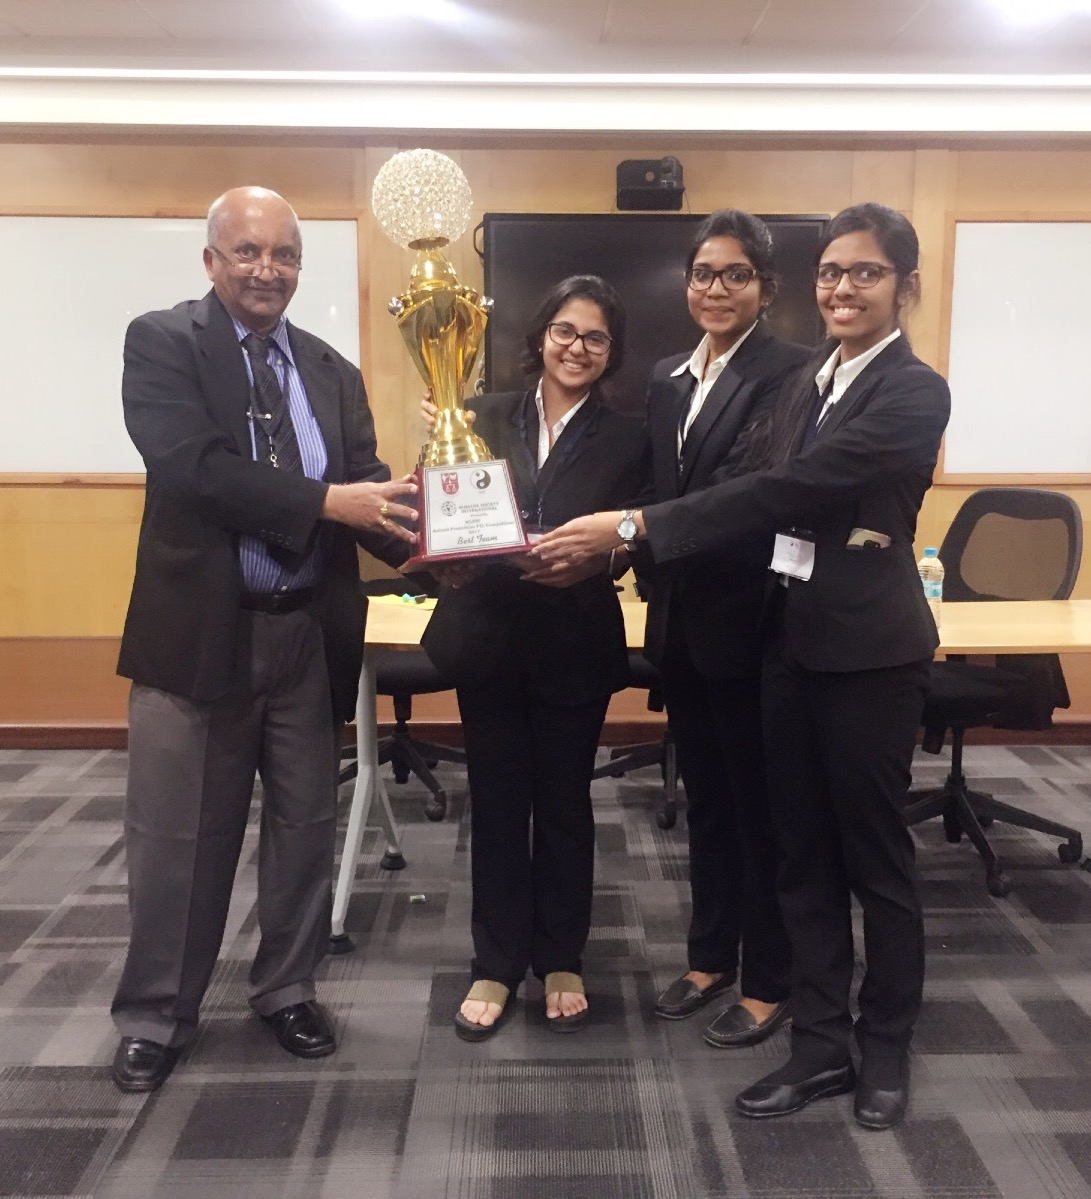 HSI Presents NLSIU Animal Protection PIL Competition 2017: Winners Interview